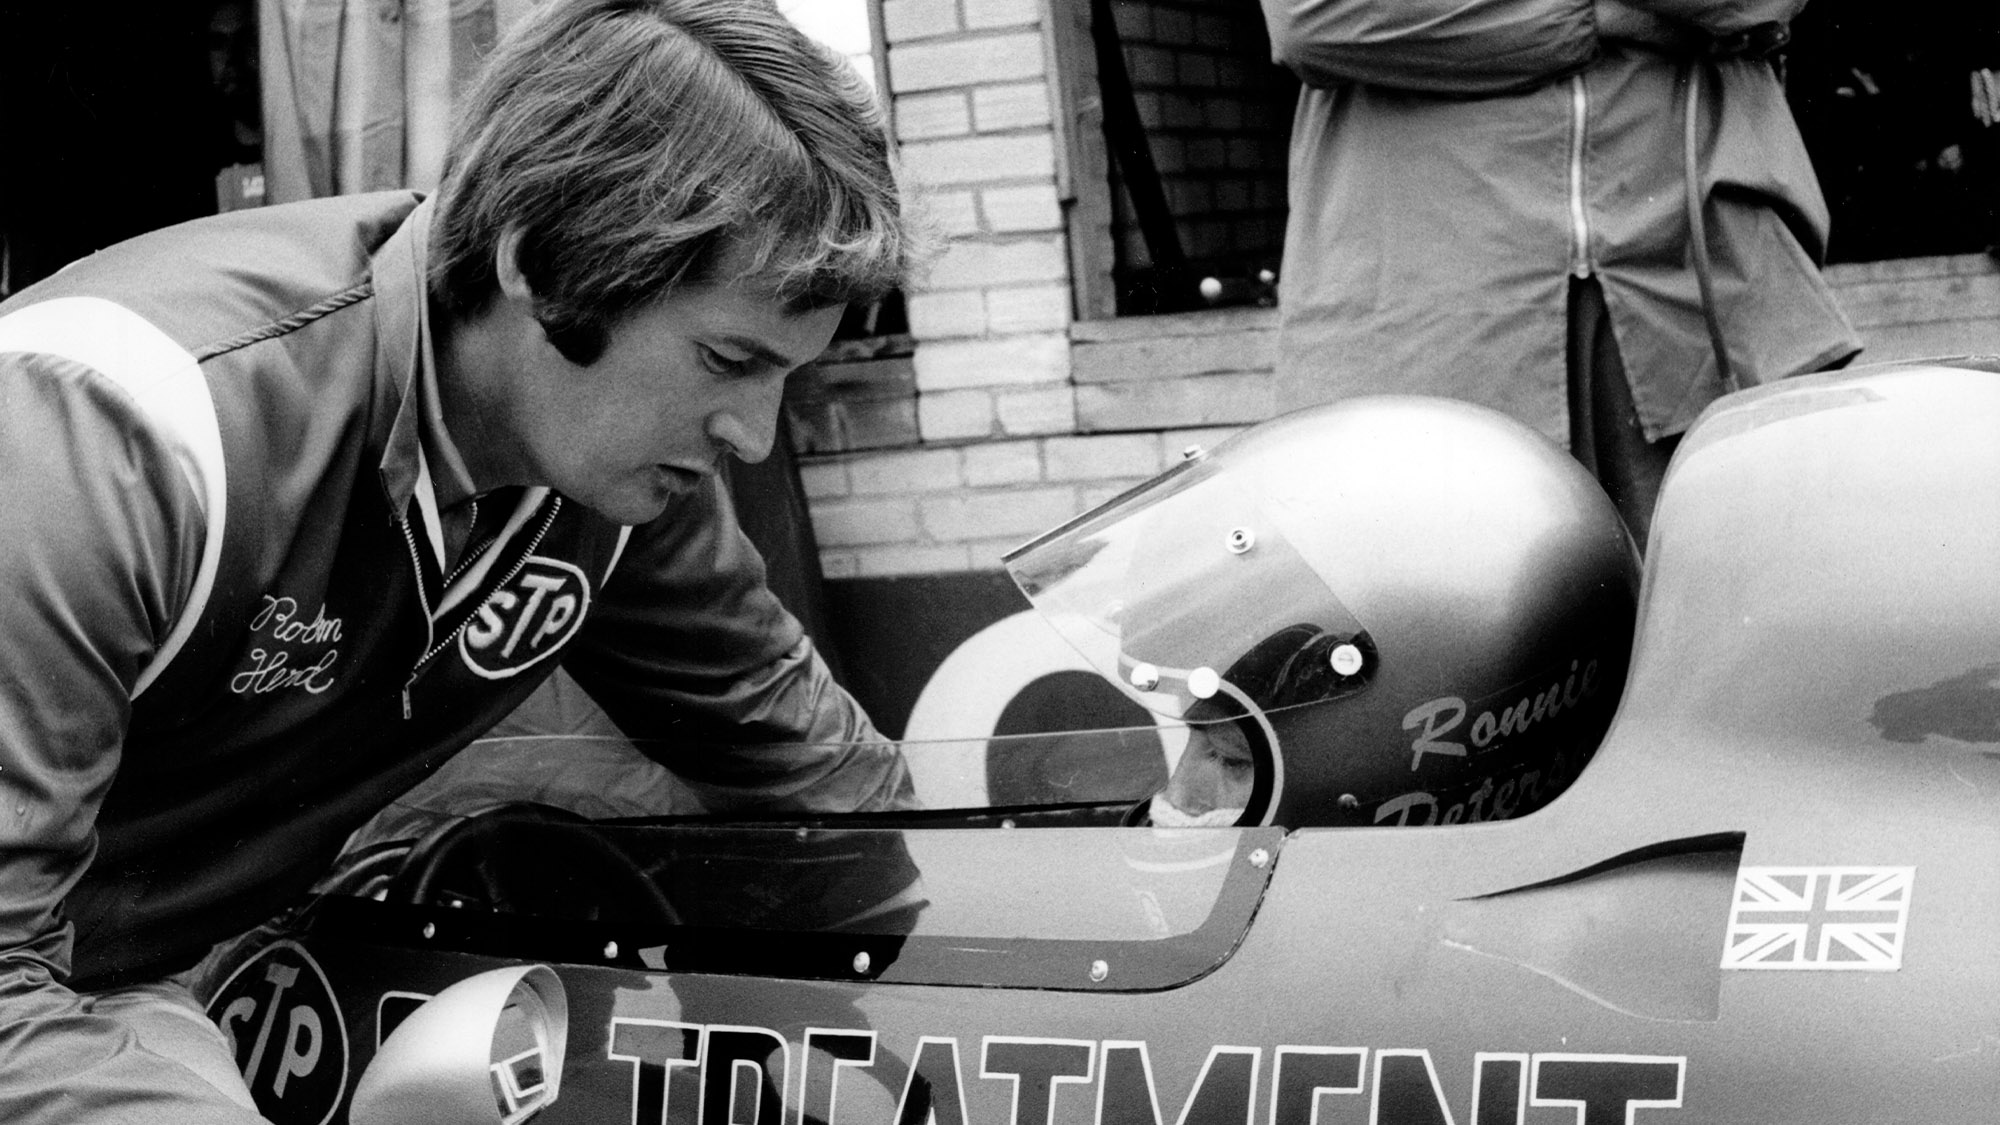 Robin Herd speaks to Ronnie Peterson at Silverstone during the 1971 F1 British Grand Prix weekend